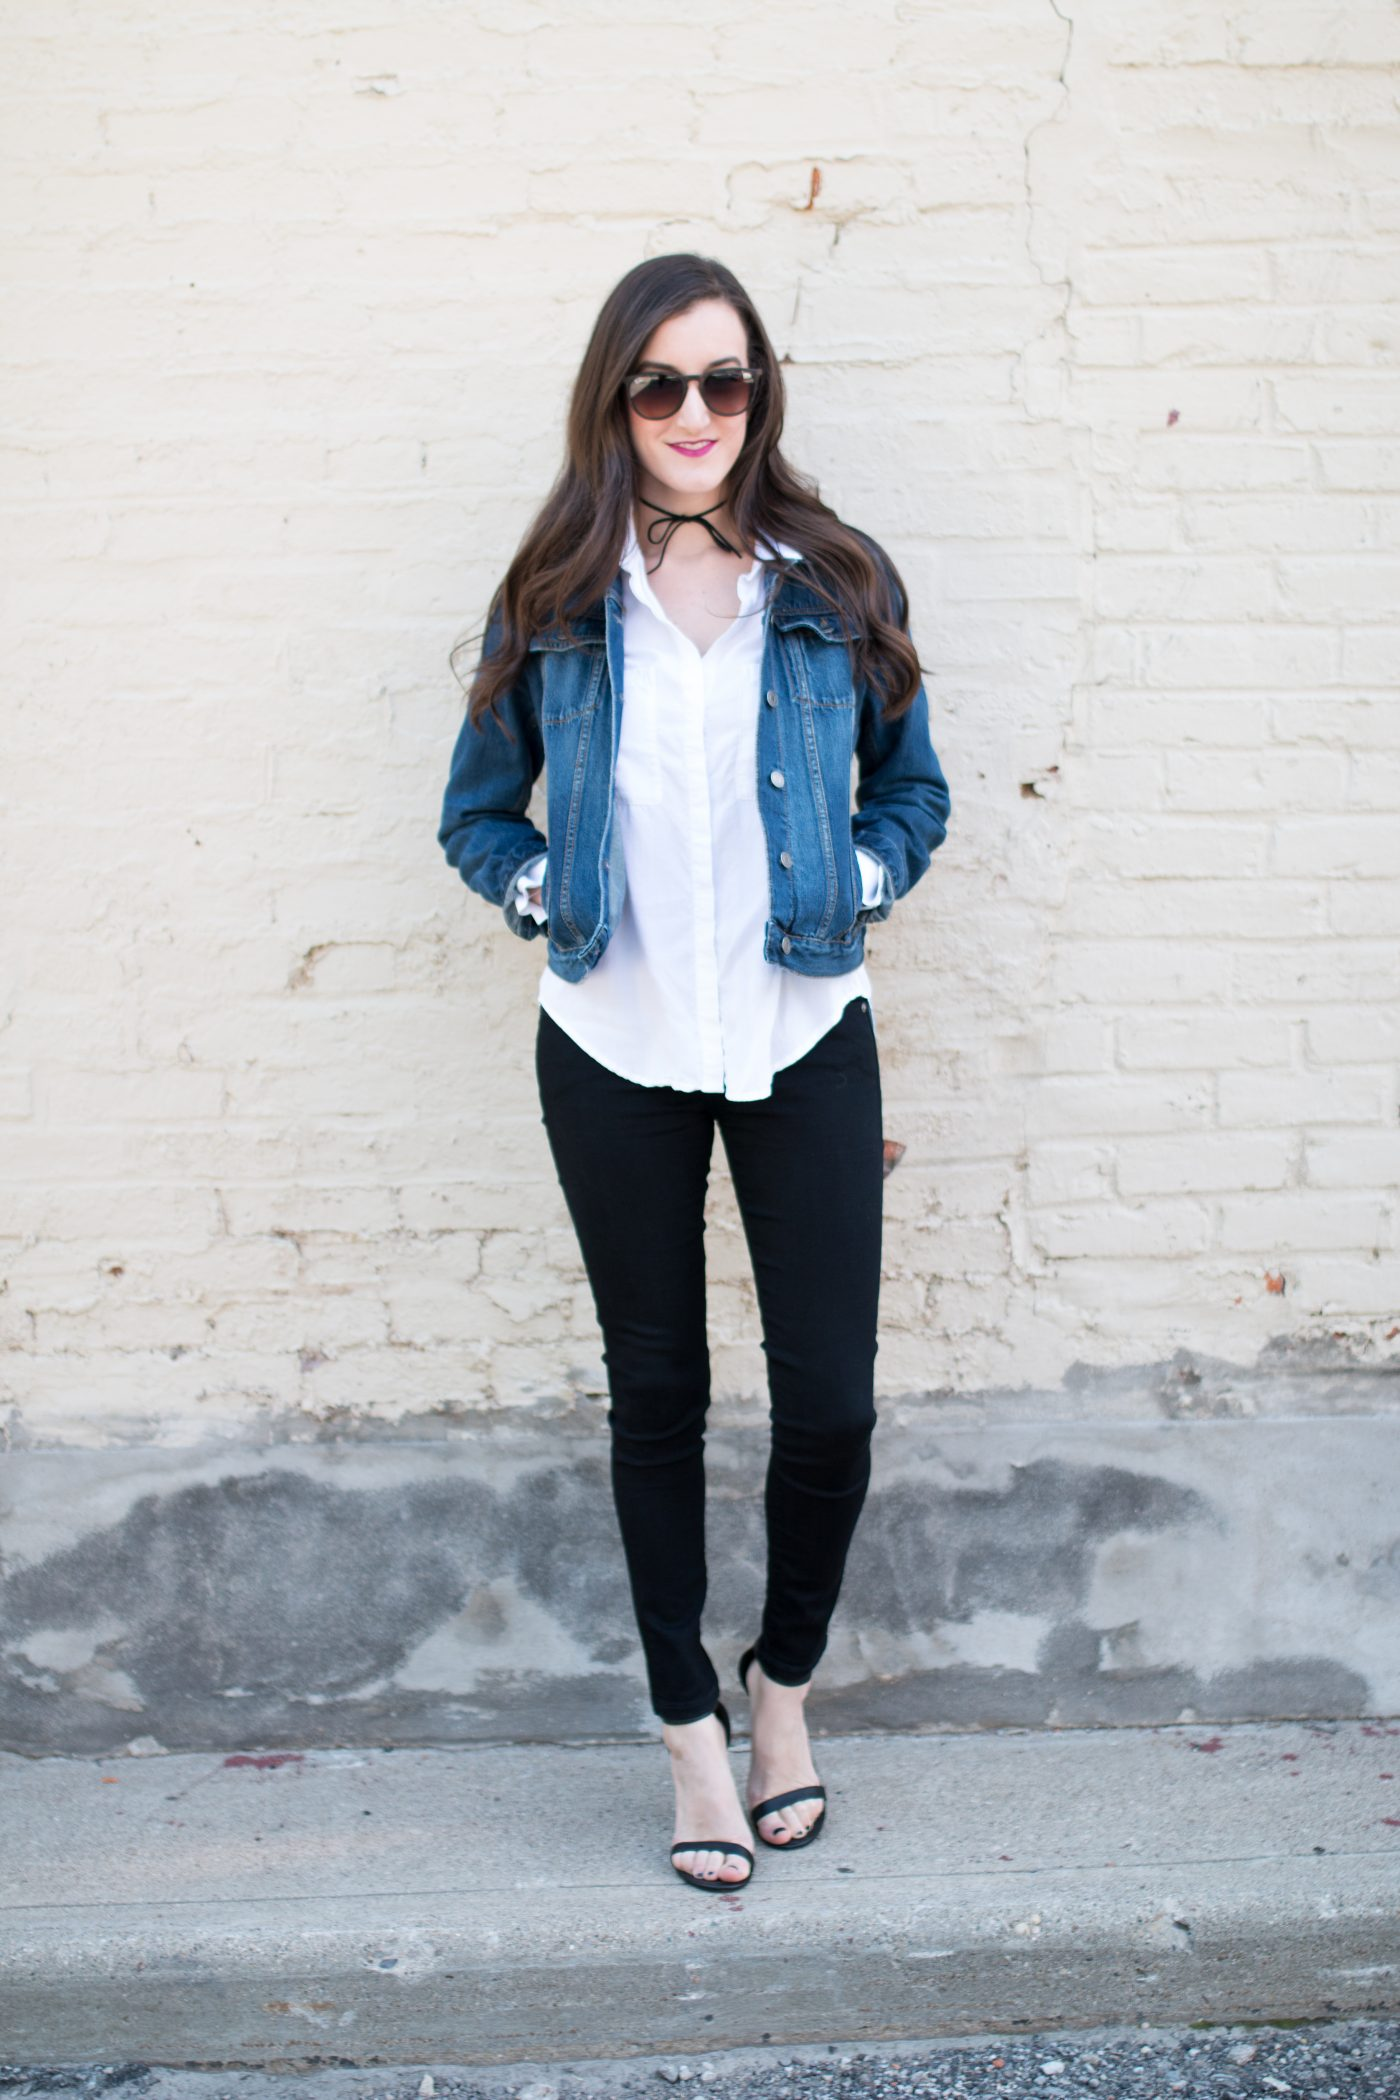 Jun 12,  · 4 Ways to Wear a Denim Jacket! Ingrid Nilsen Ingrid Nilsen. Loading Unsubscribe from Ingrid Nilsen? Cancel Unsubscribe. Working Subscribe Subscribed Unsubscribe M.